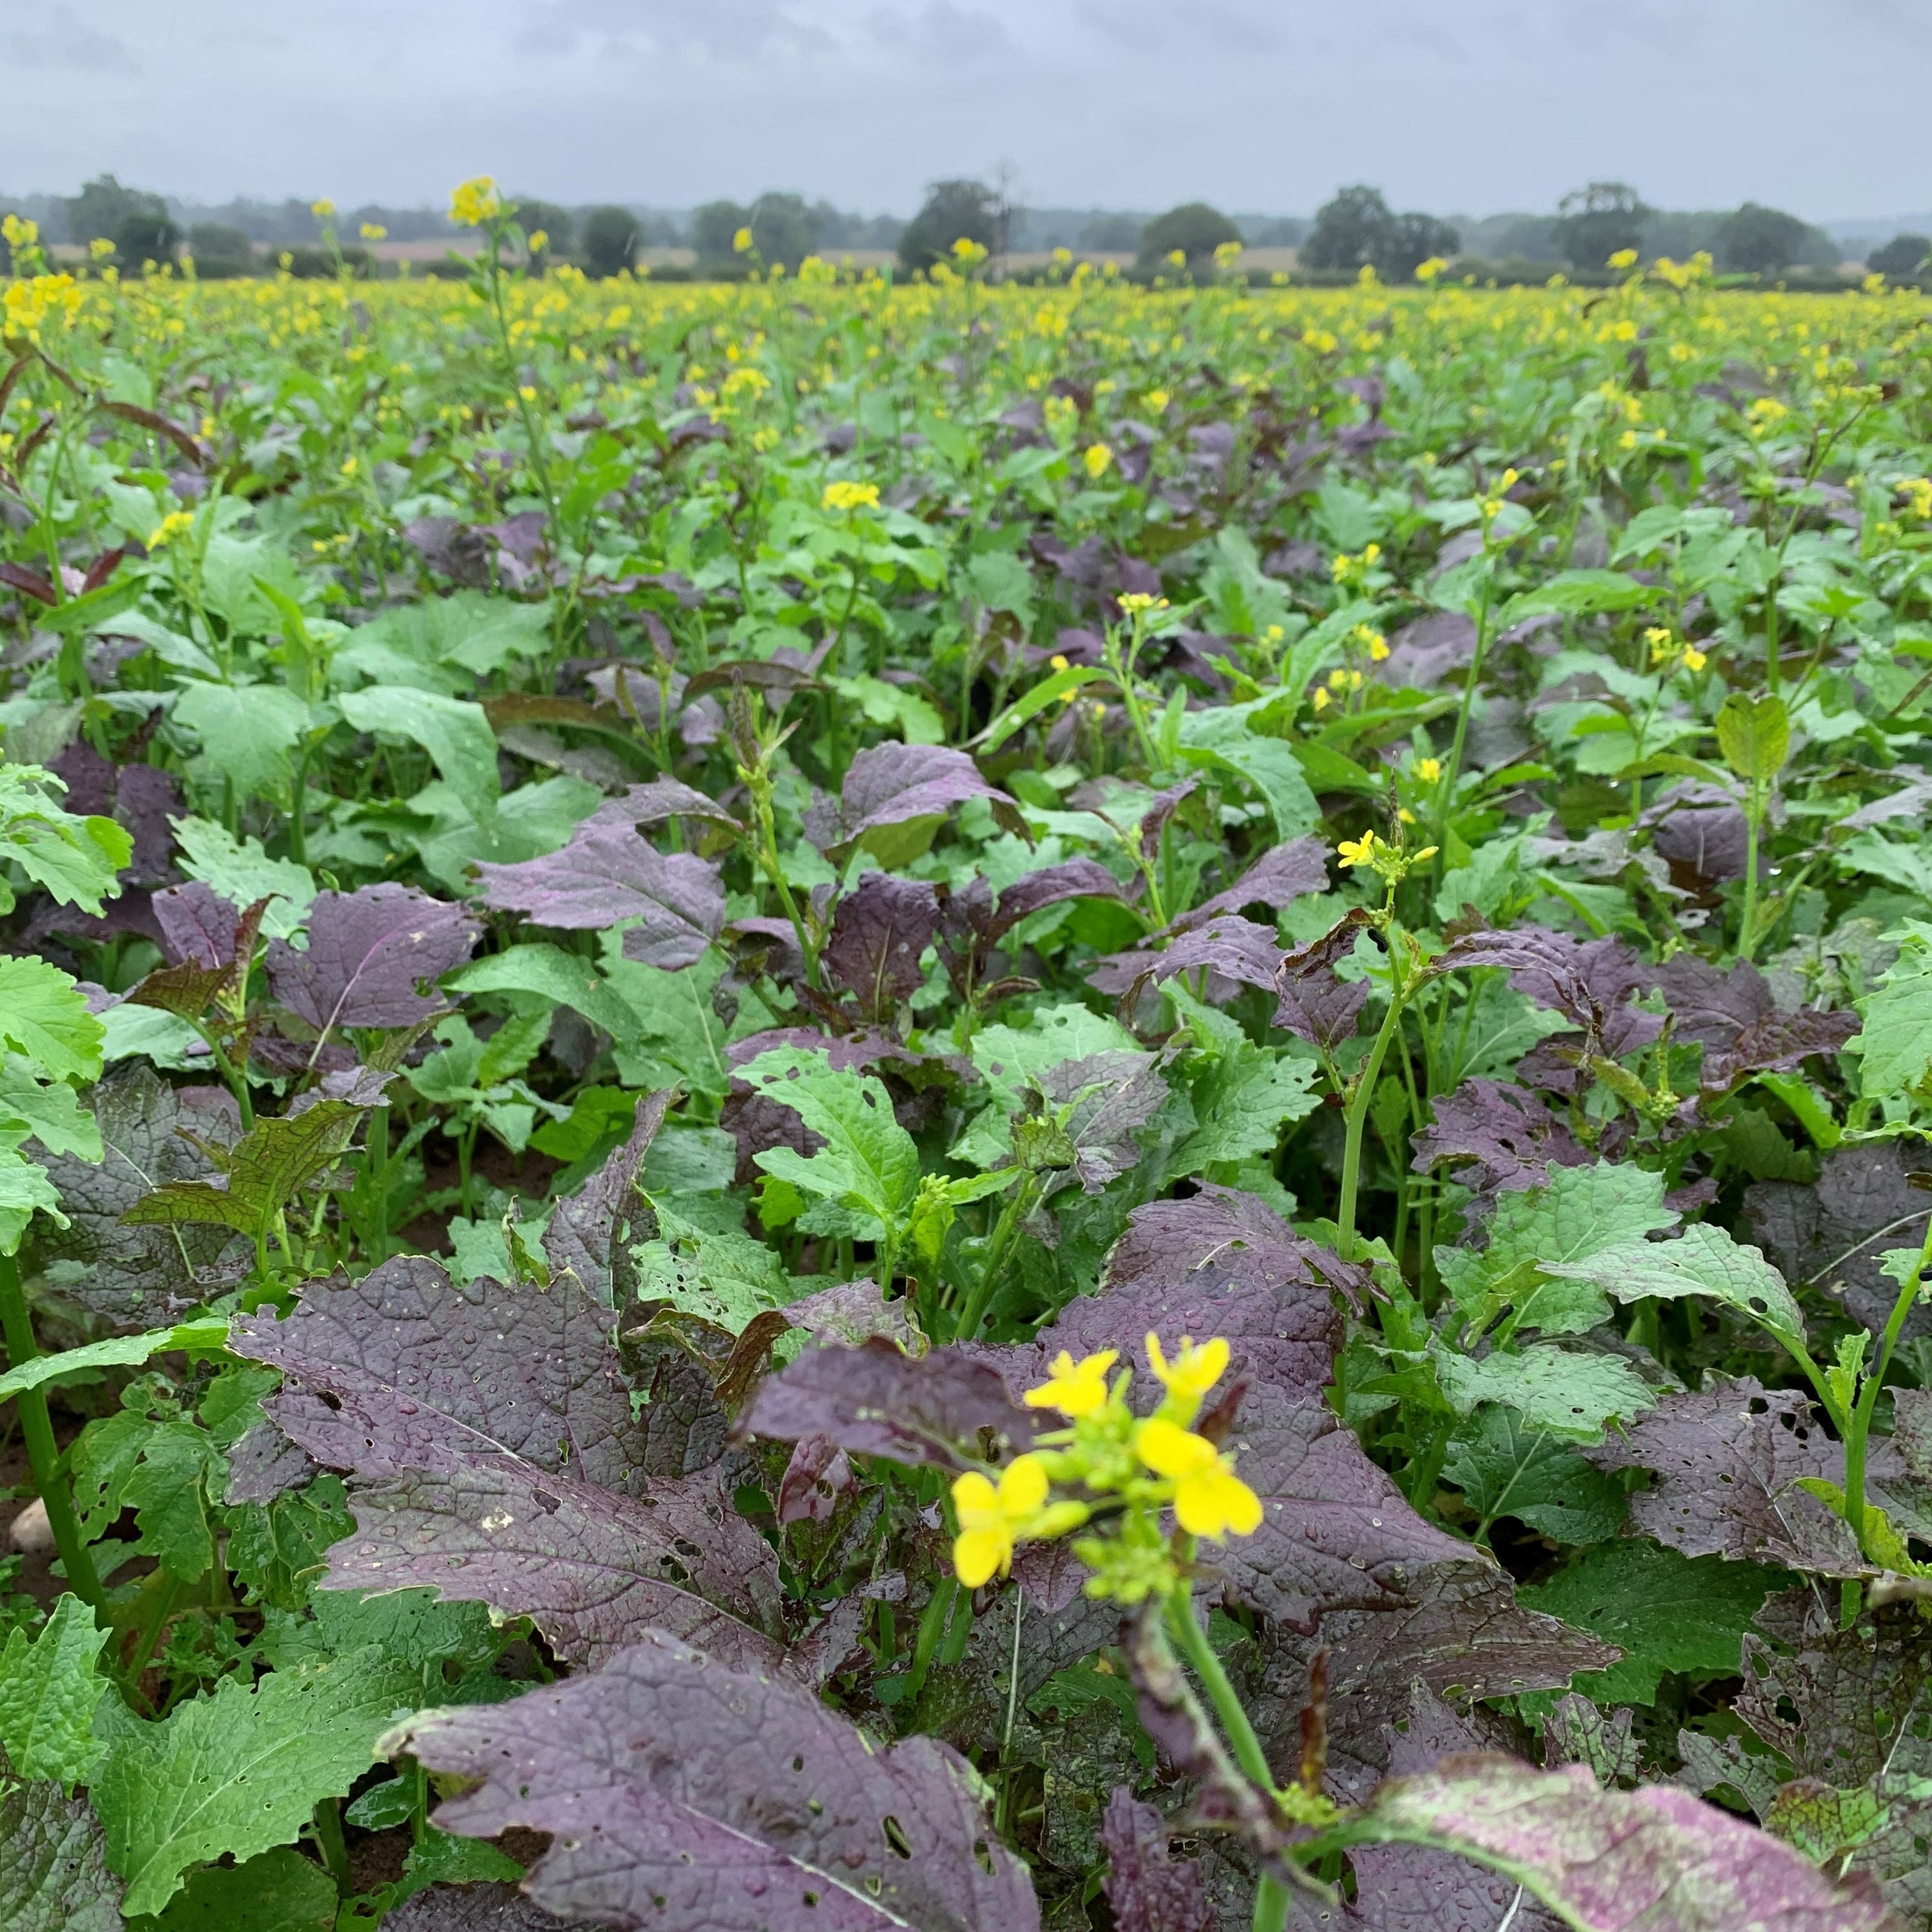 Agroecology in Focus - Biofumigation